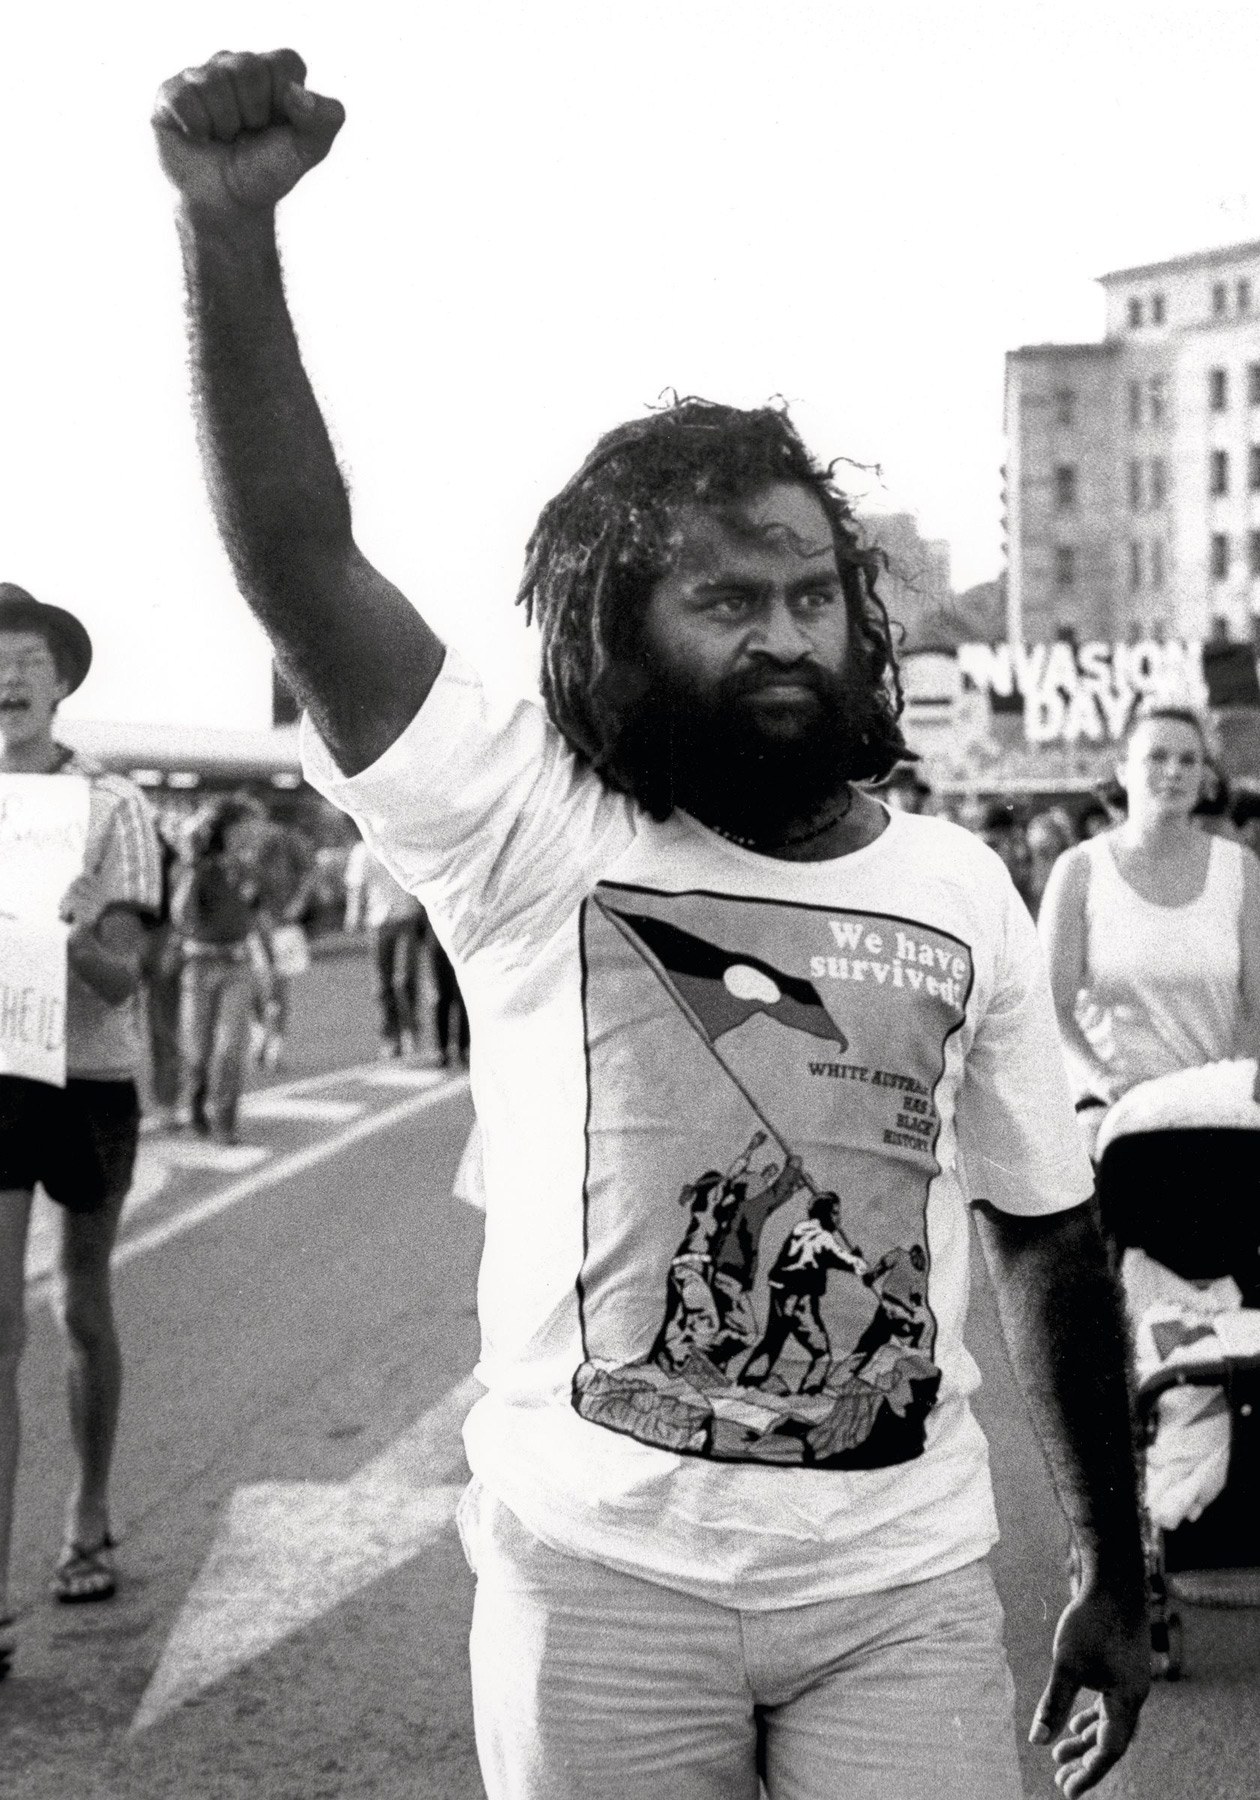 Vincent Brady leading anti Bicentenary Protest, Brisbane, 1987 Michael Aird